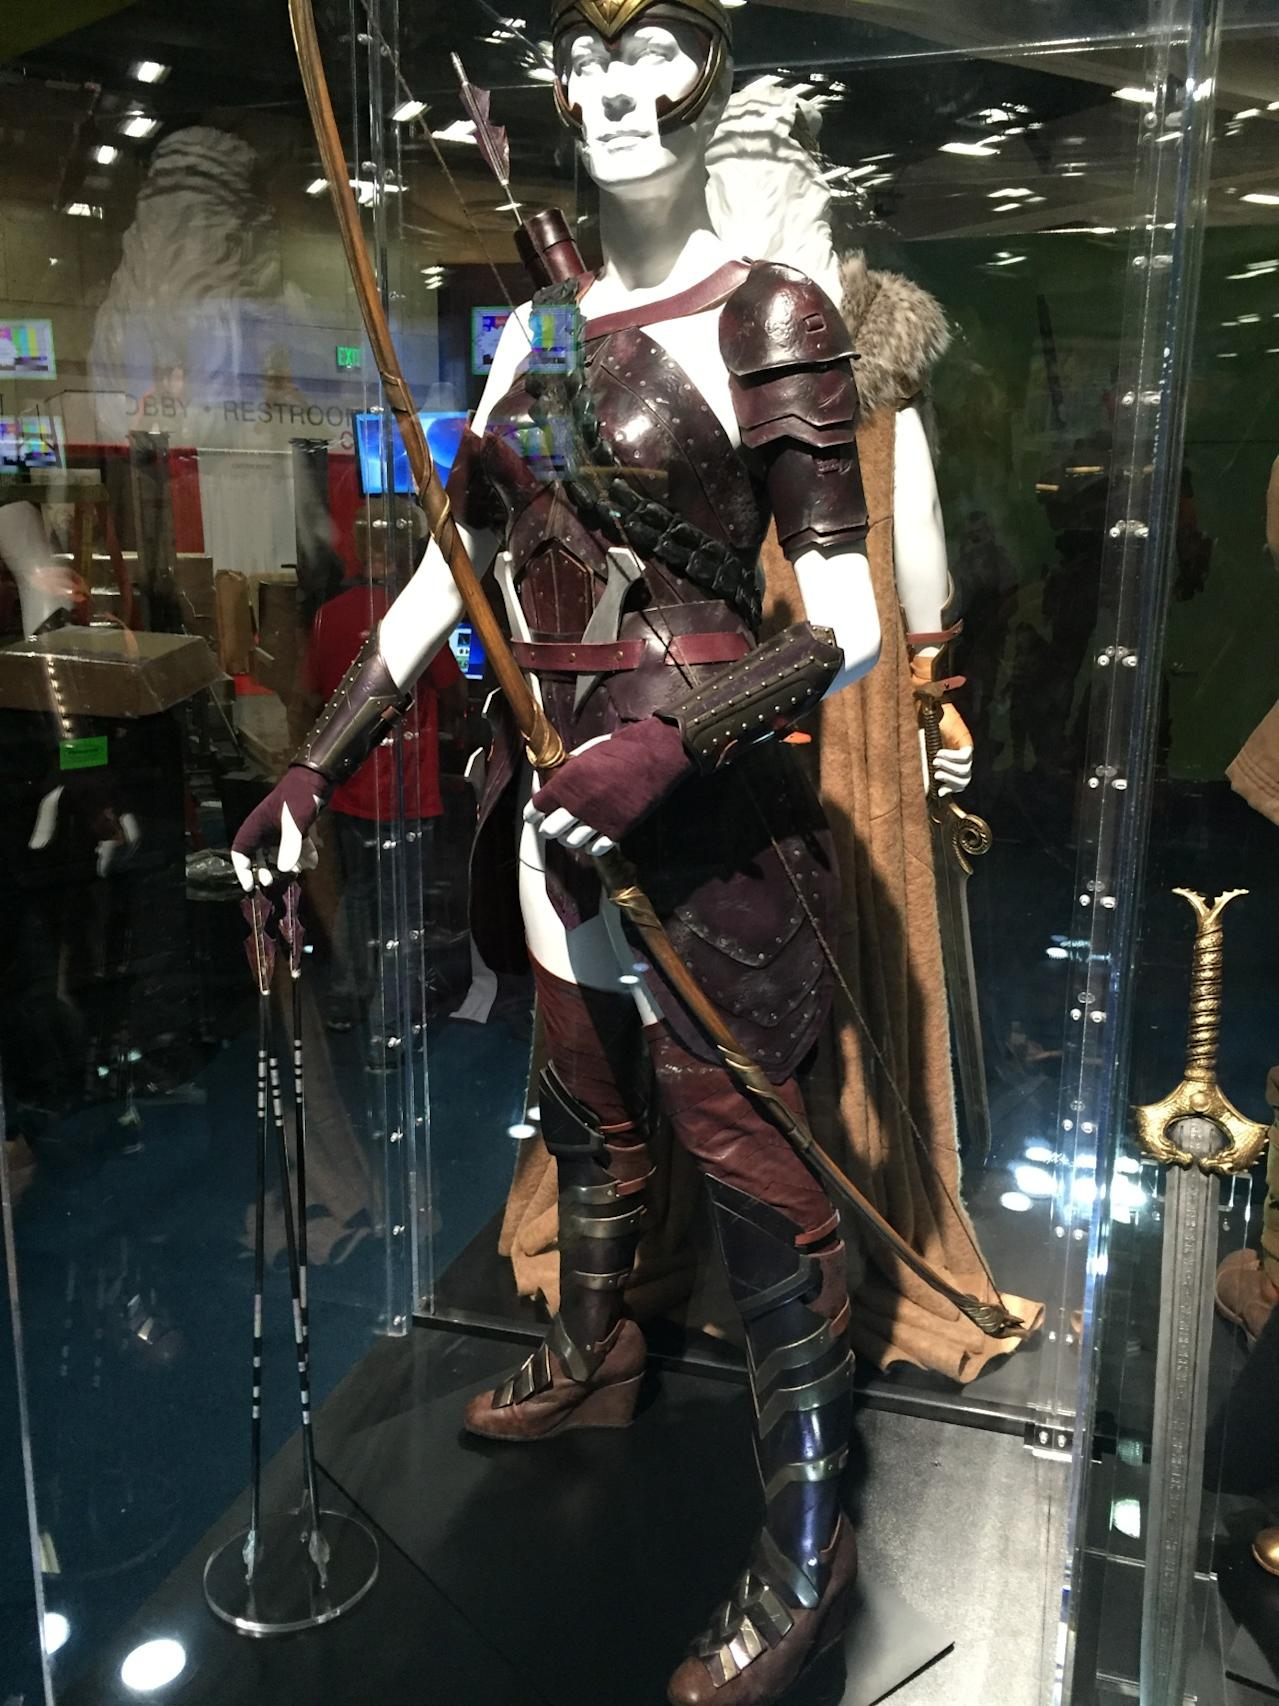 <p>This fierce Amazon (and Wonder Woman's aunt) has a fierce costume, complete with armor and knee-high boots. She also comes equipped with a bow and arrows.</p>